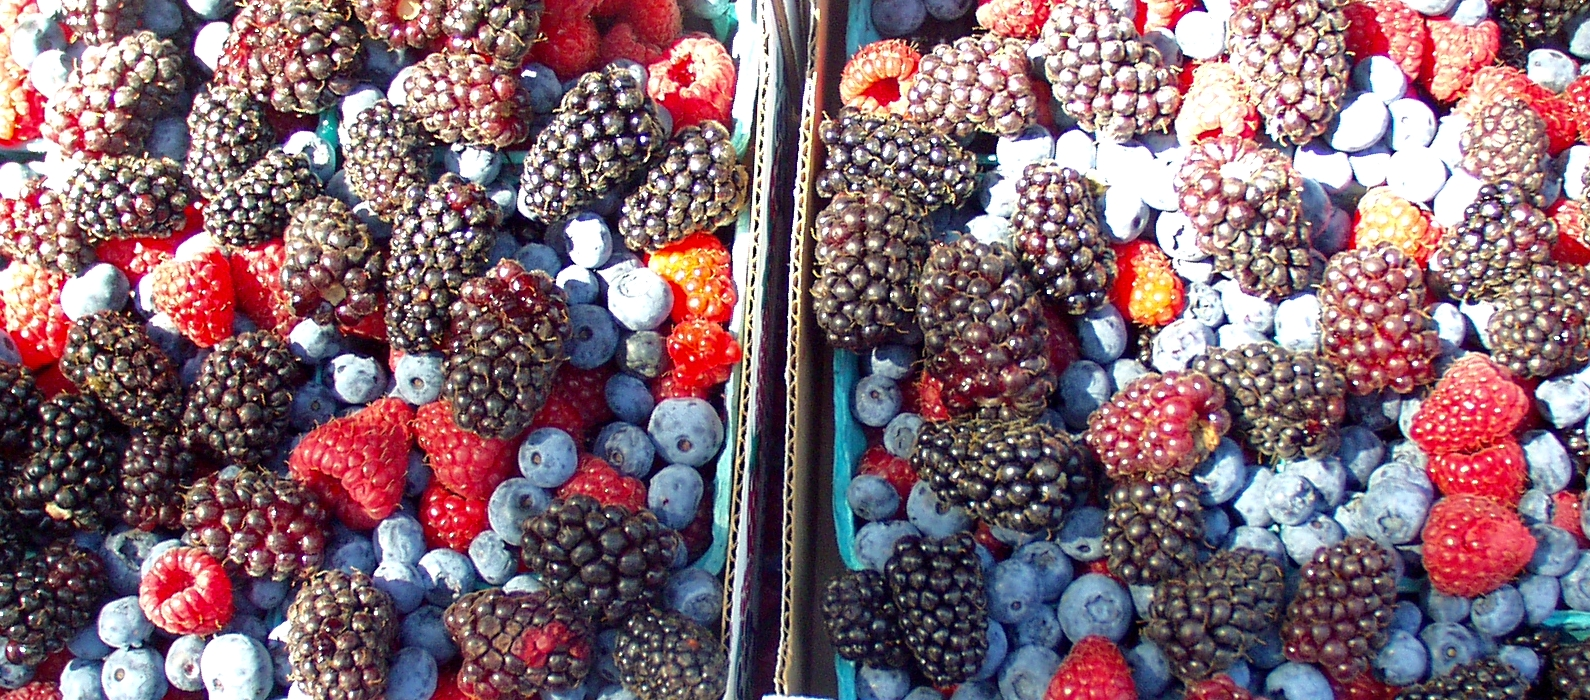 A colorful mix of berries from Jessie's Berries. Photo copyright 2009 by Zachary D. Lyons.